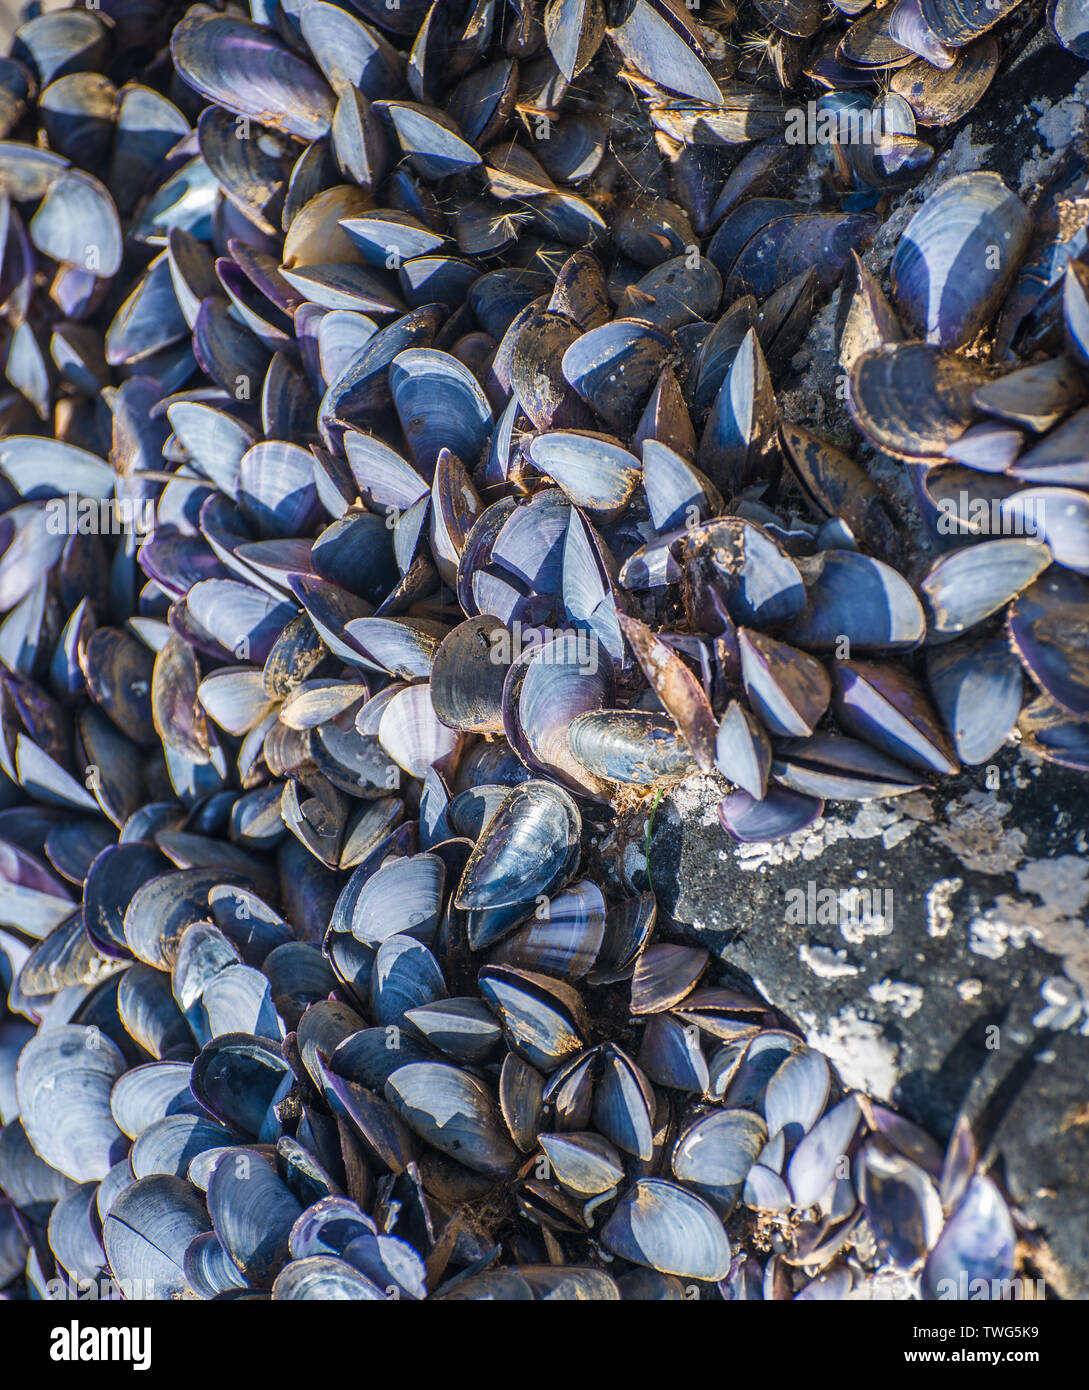 A colony of mollusks. Selective focus. - Stock Image